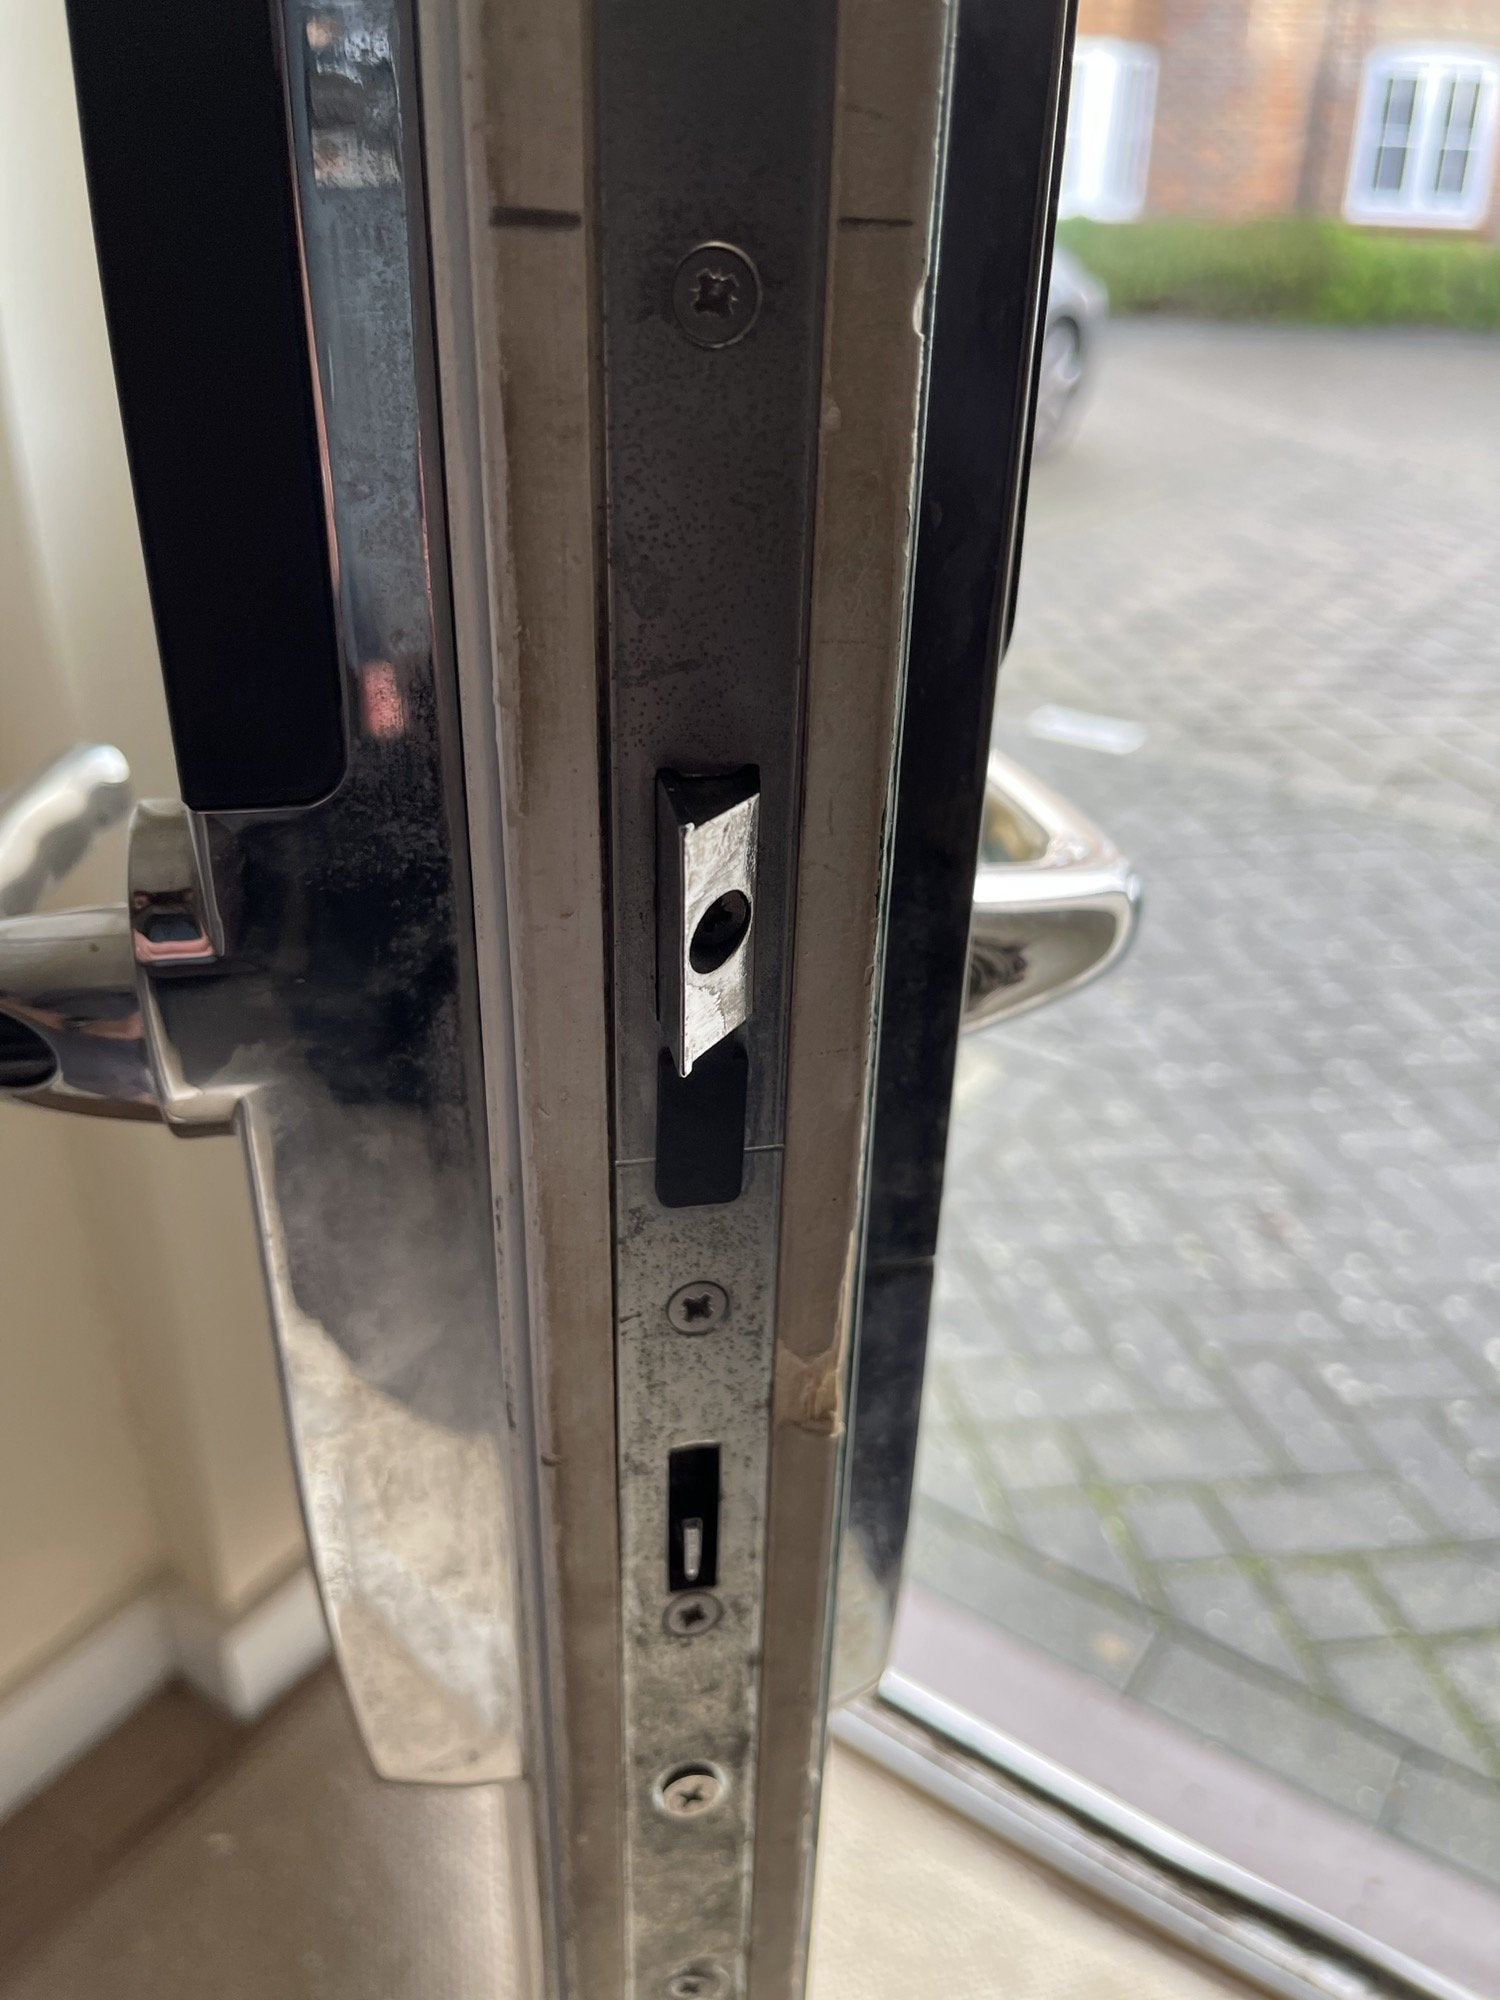 Can anyone advise you on what type of HomeKit door